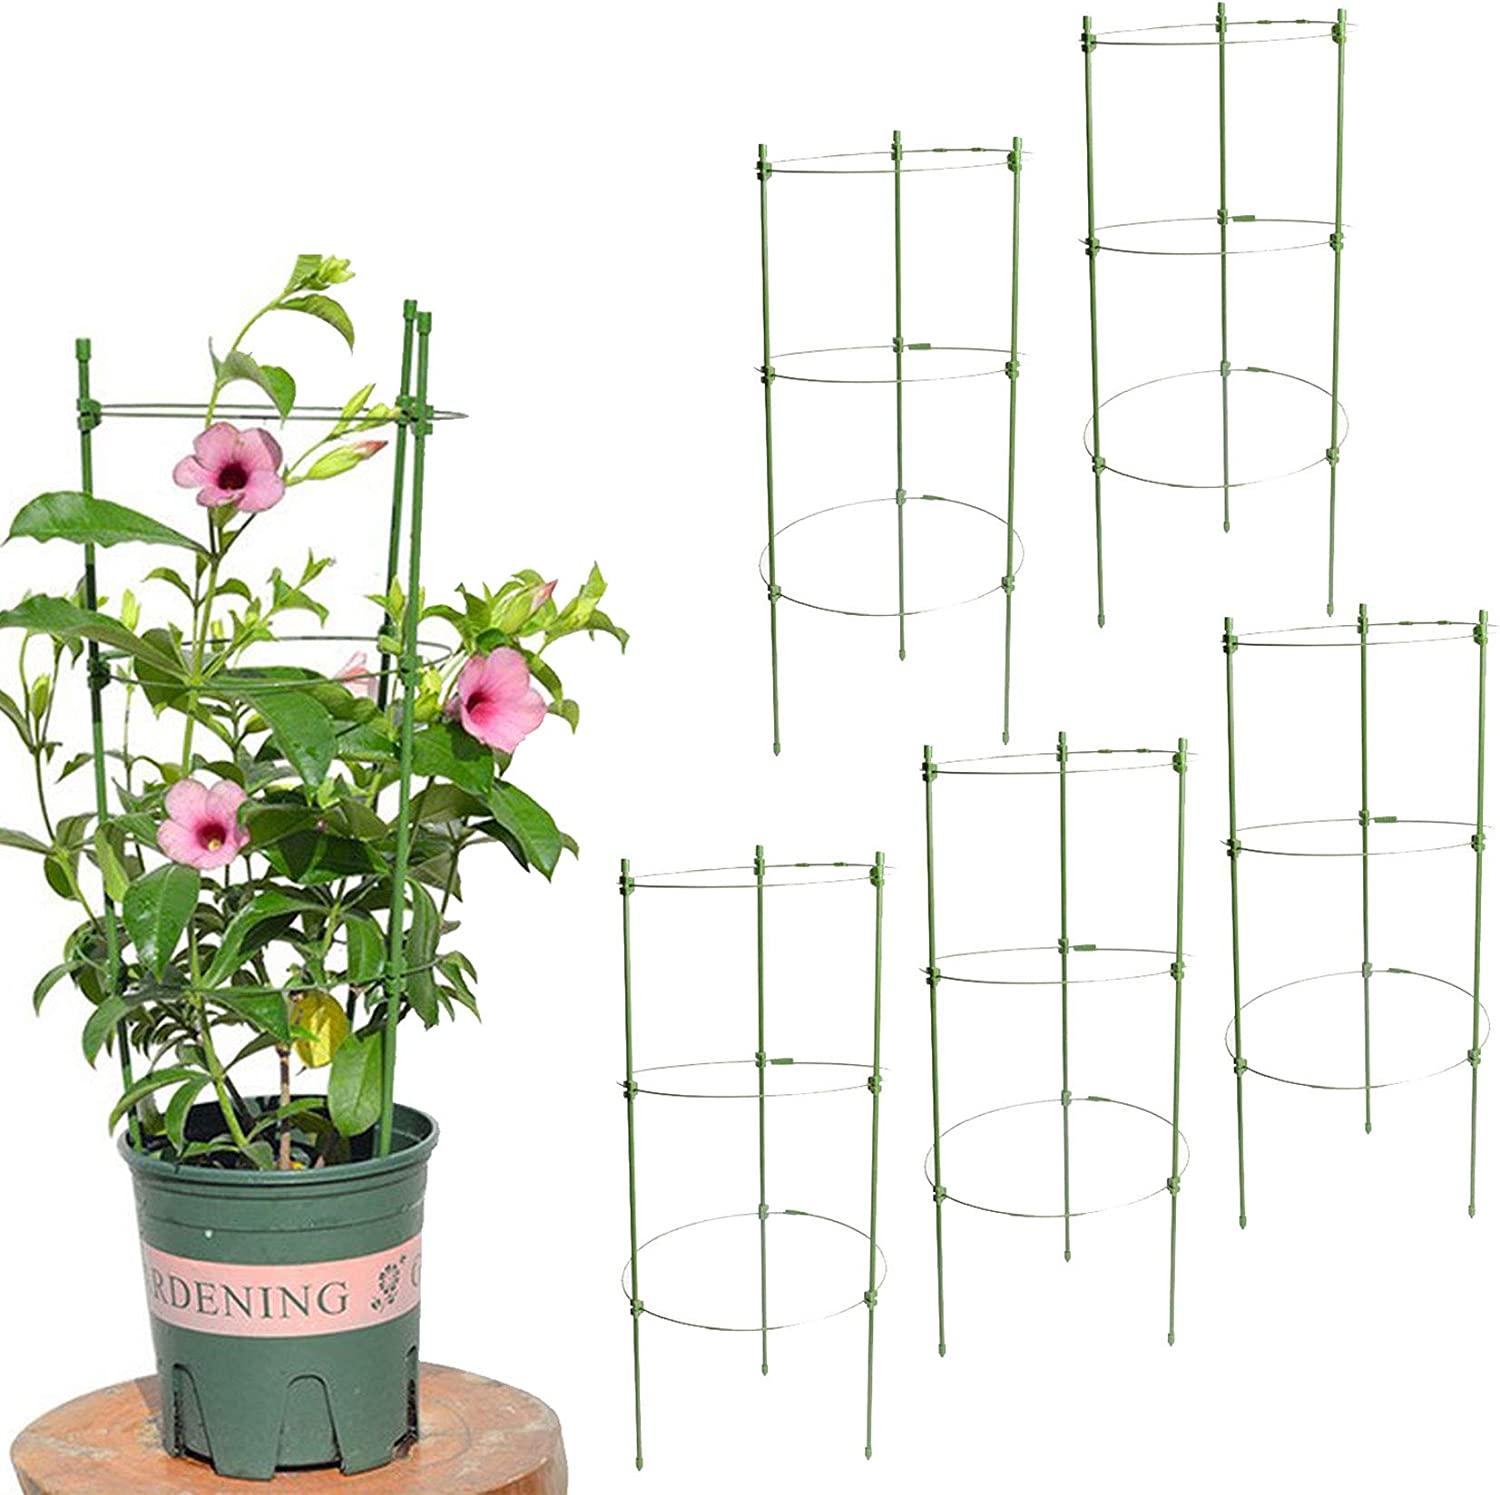 WOCHOLL Tomato Cages for Garden 5 Pack 18Inches Garden Stakes for Plants with 3 Adjustable Support Rings, Plant Stake for Supporter Climbing Plants, Slip and Shock Resistant